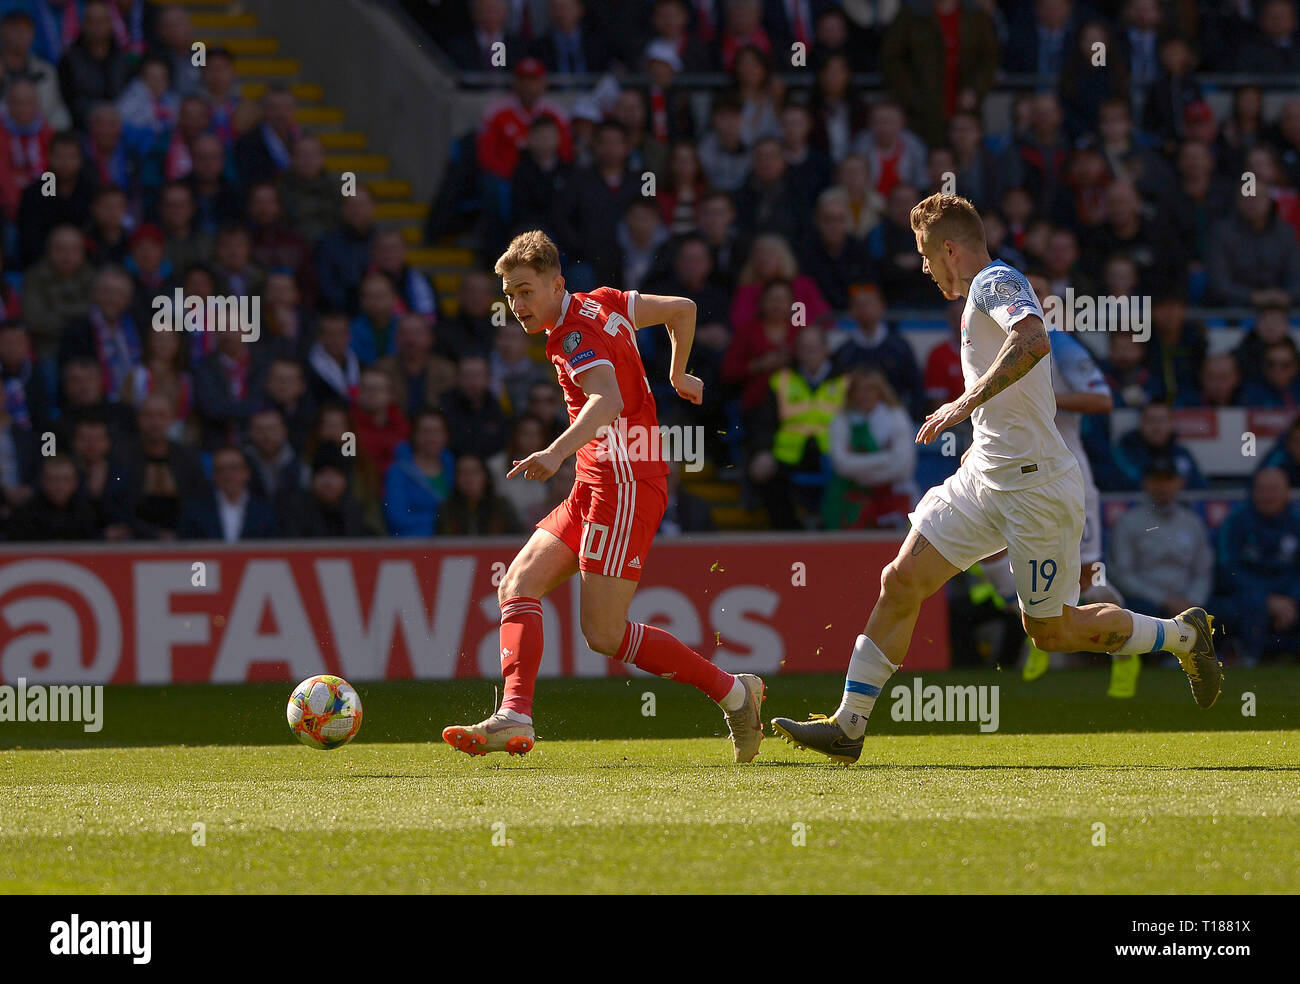 Cardiff, Wales, UK. 24th Mar 2019. Football, UEFA European Qualifiers Group E, Wales v Slovakia, 24/03/19, Cardiff City Stadium, K.O 2PM  Wales' David Brooks shoots and scores for his team  Andrew Dowling Credit: Andrew Dowling/Influential Photography/Alamy Live News Stock Photo